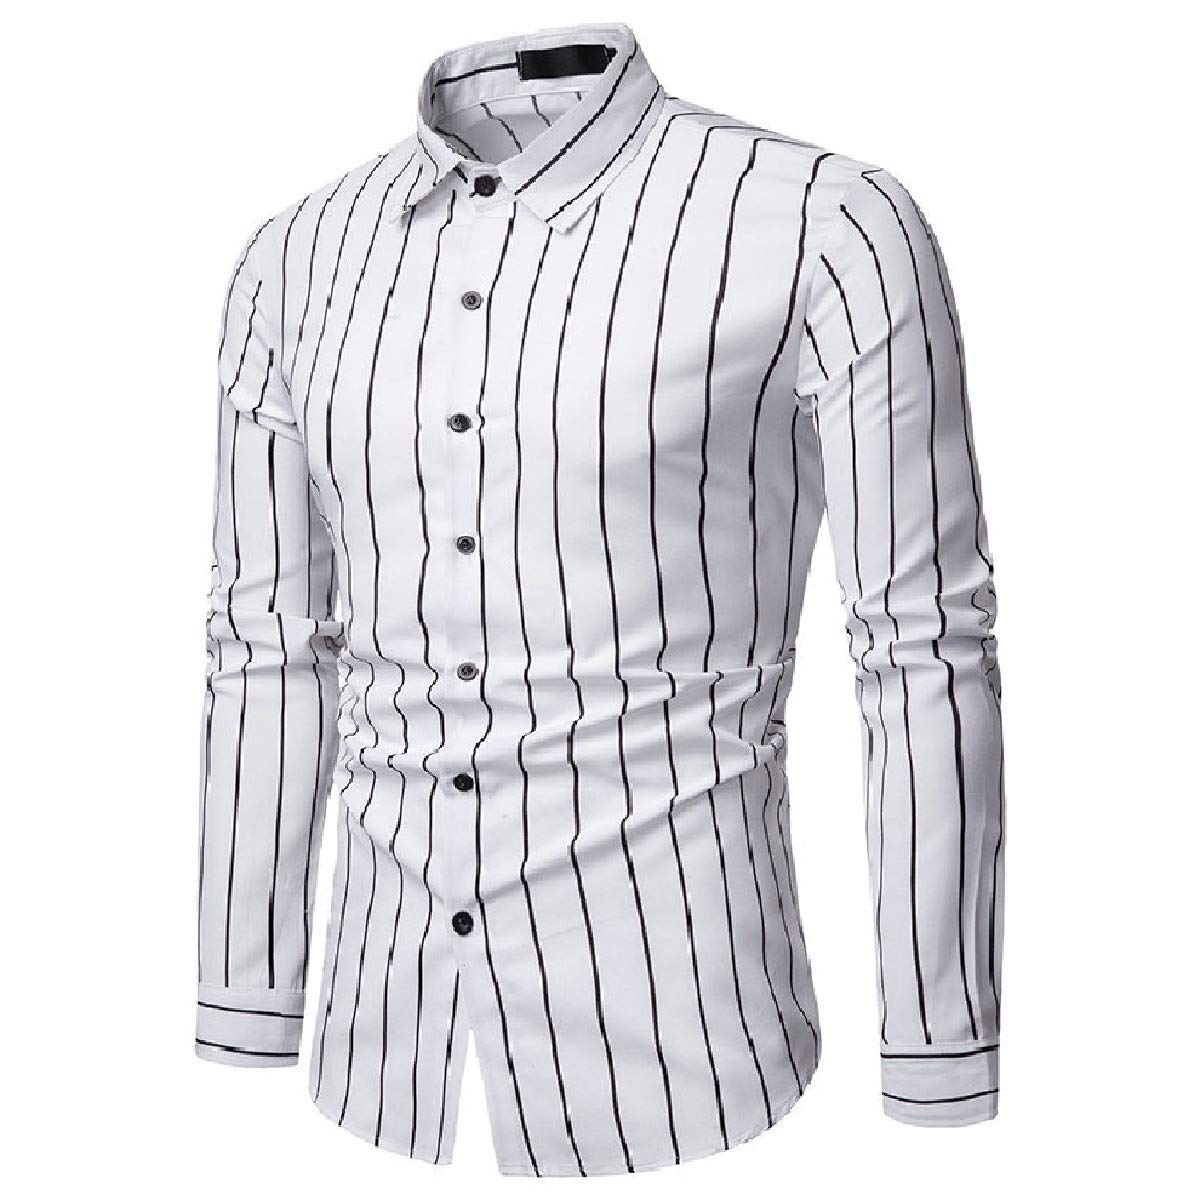 Losait Mens Business Regular-Fit Long-Sleeve Button Up Stripe Work Shirt